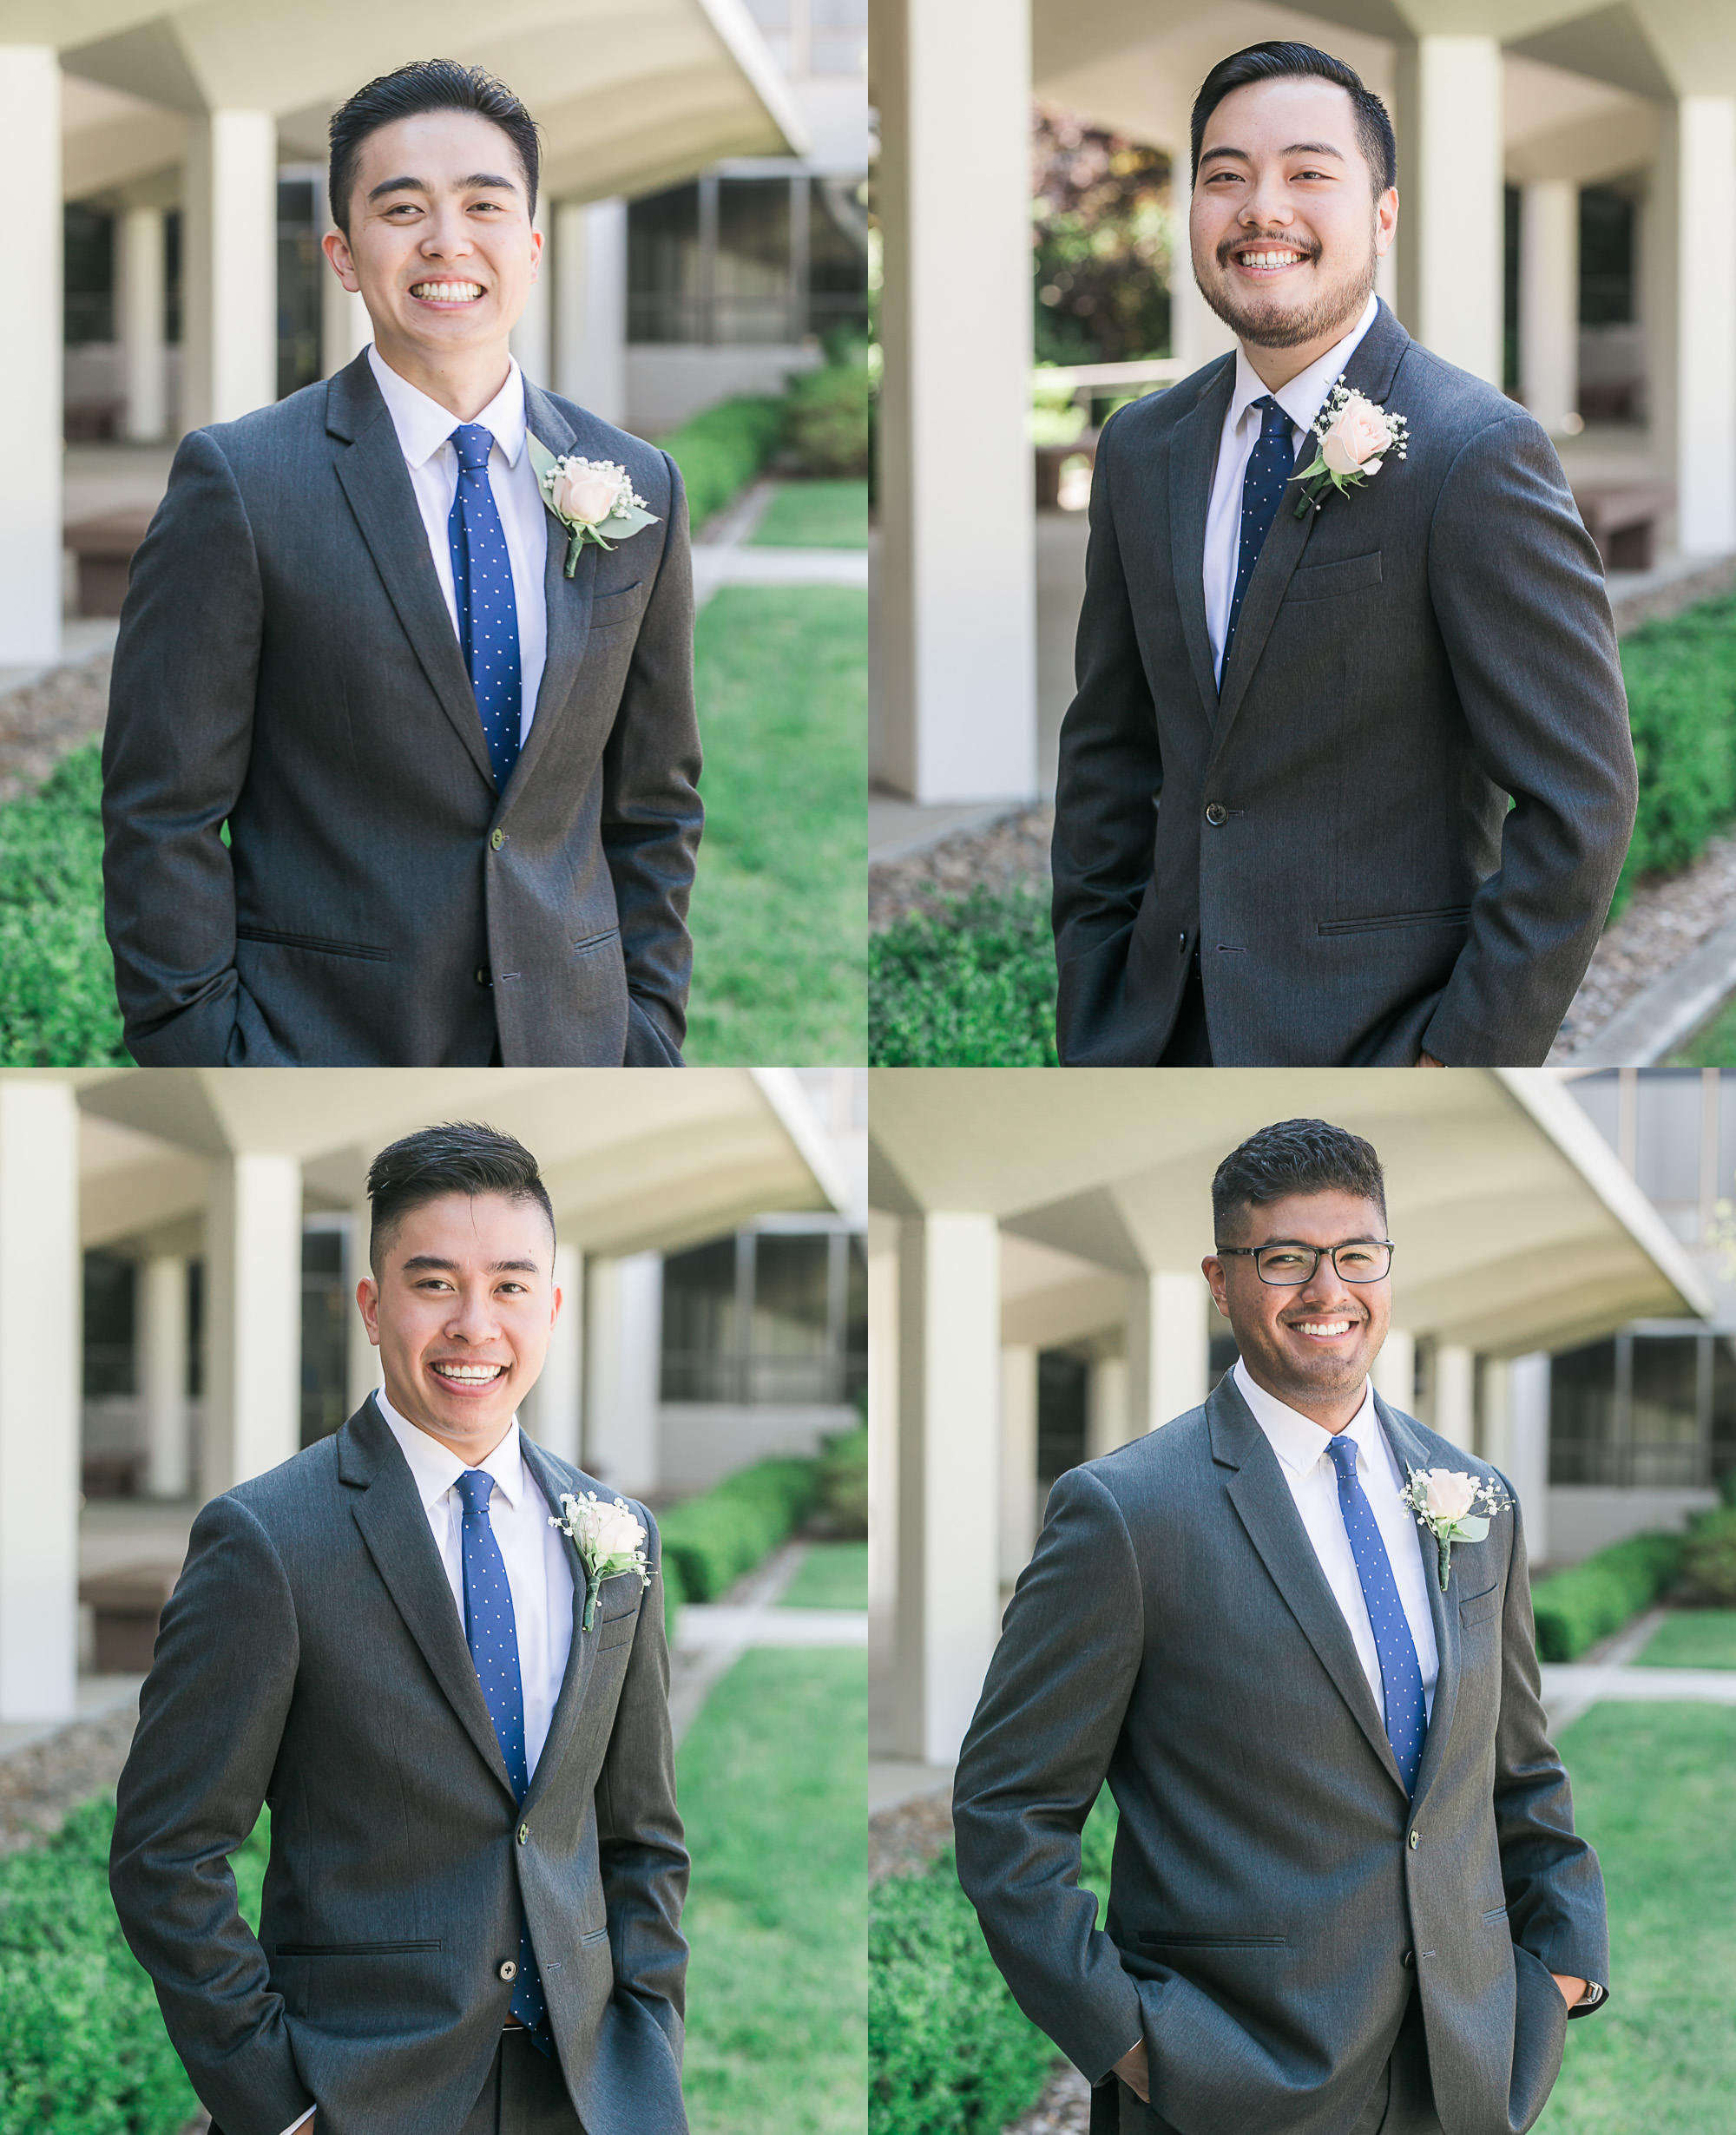 College of San Mateo - Michelle Chang Photography